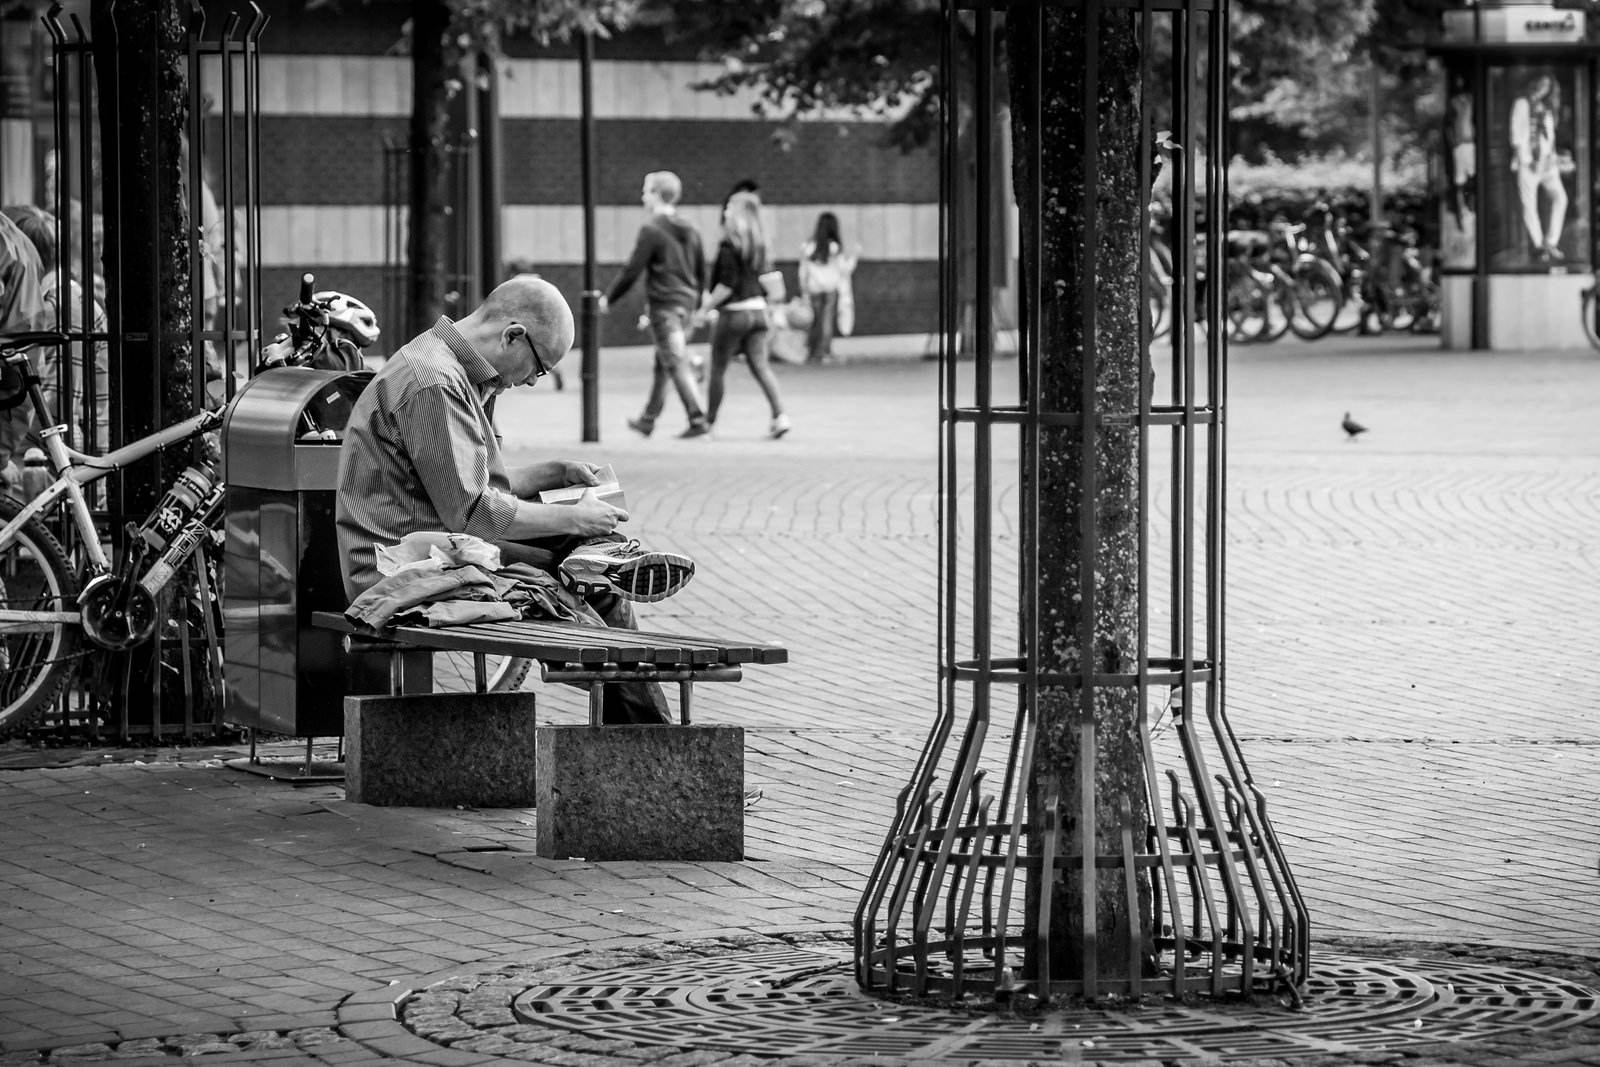 street photo4 Street Photos by Sjoerd Lammers